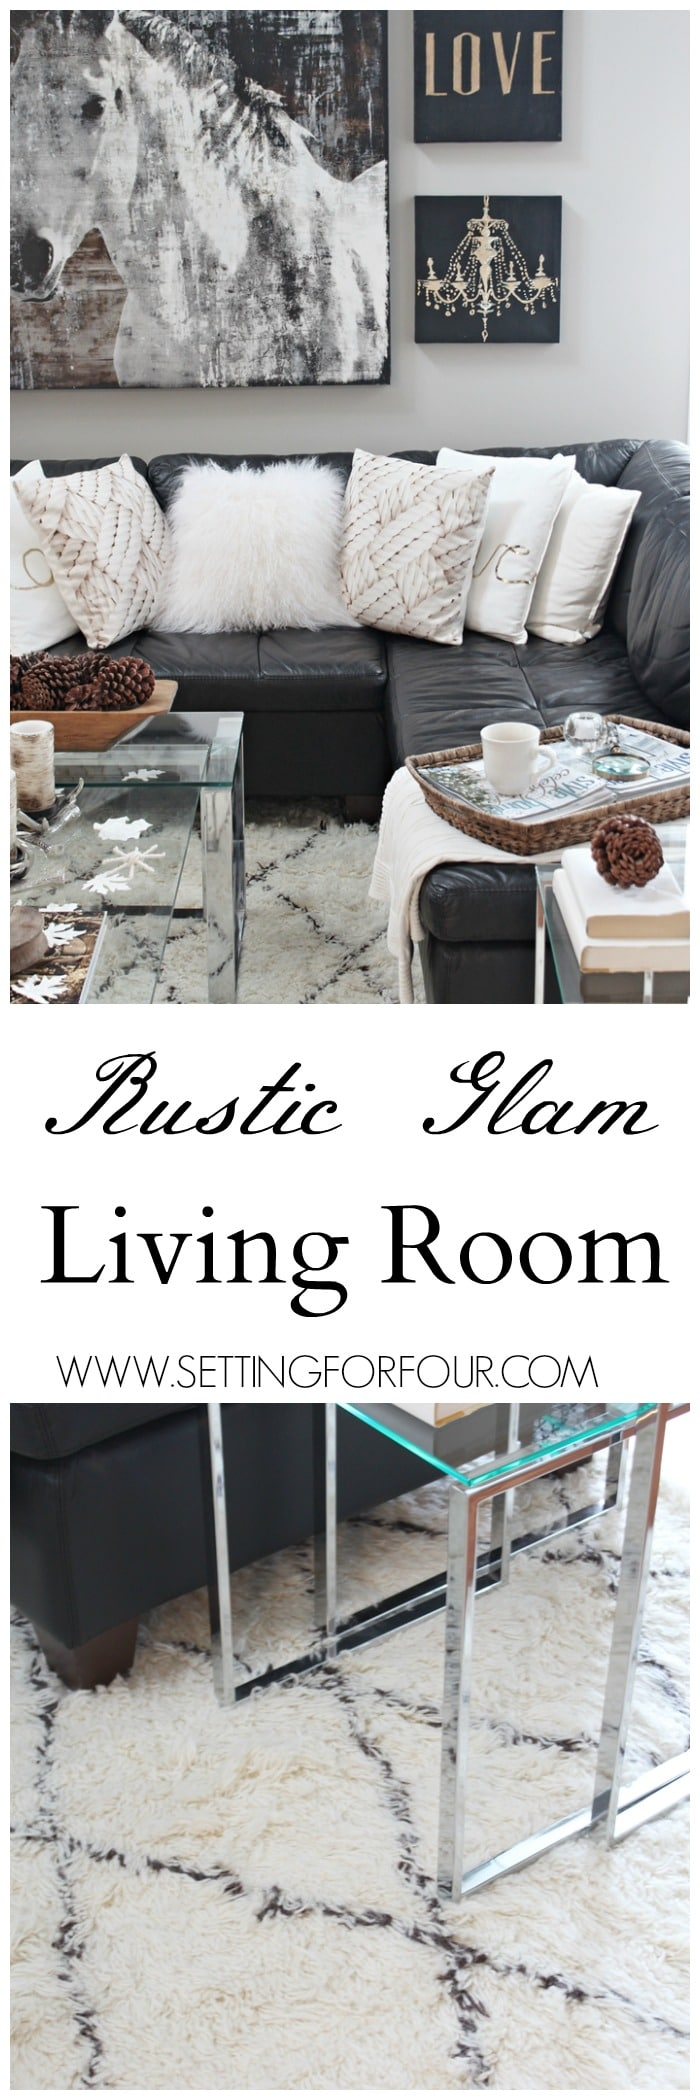 Rustic Glam Living Room New Rug Setting For Four